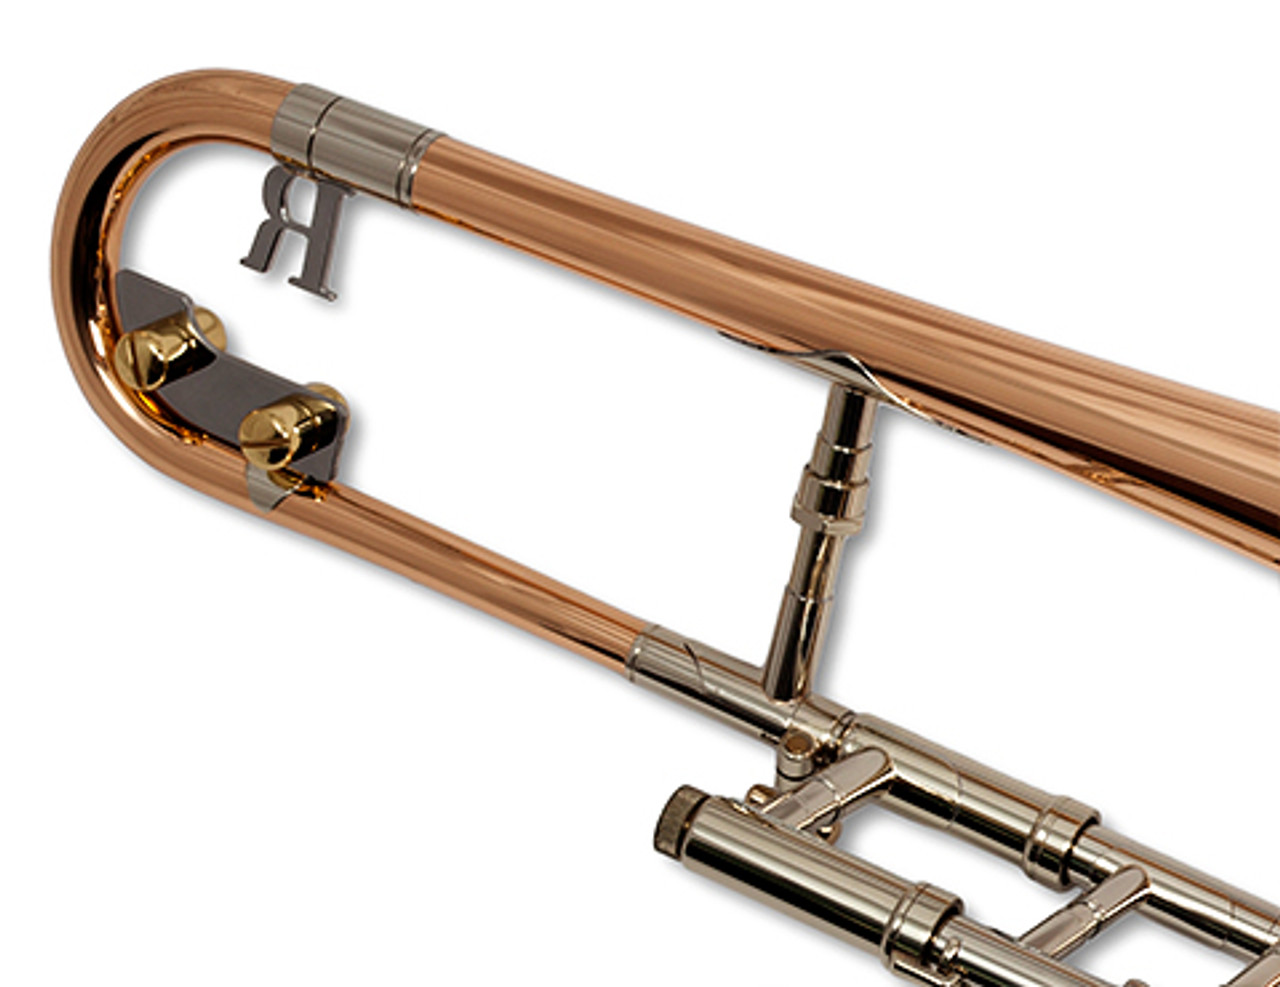 Michael Rath Tenor Trombones Model R2